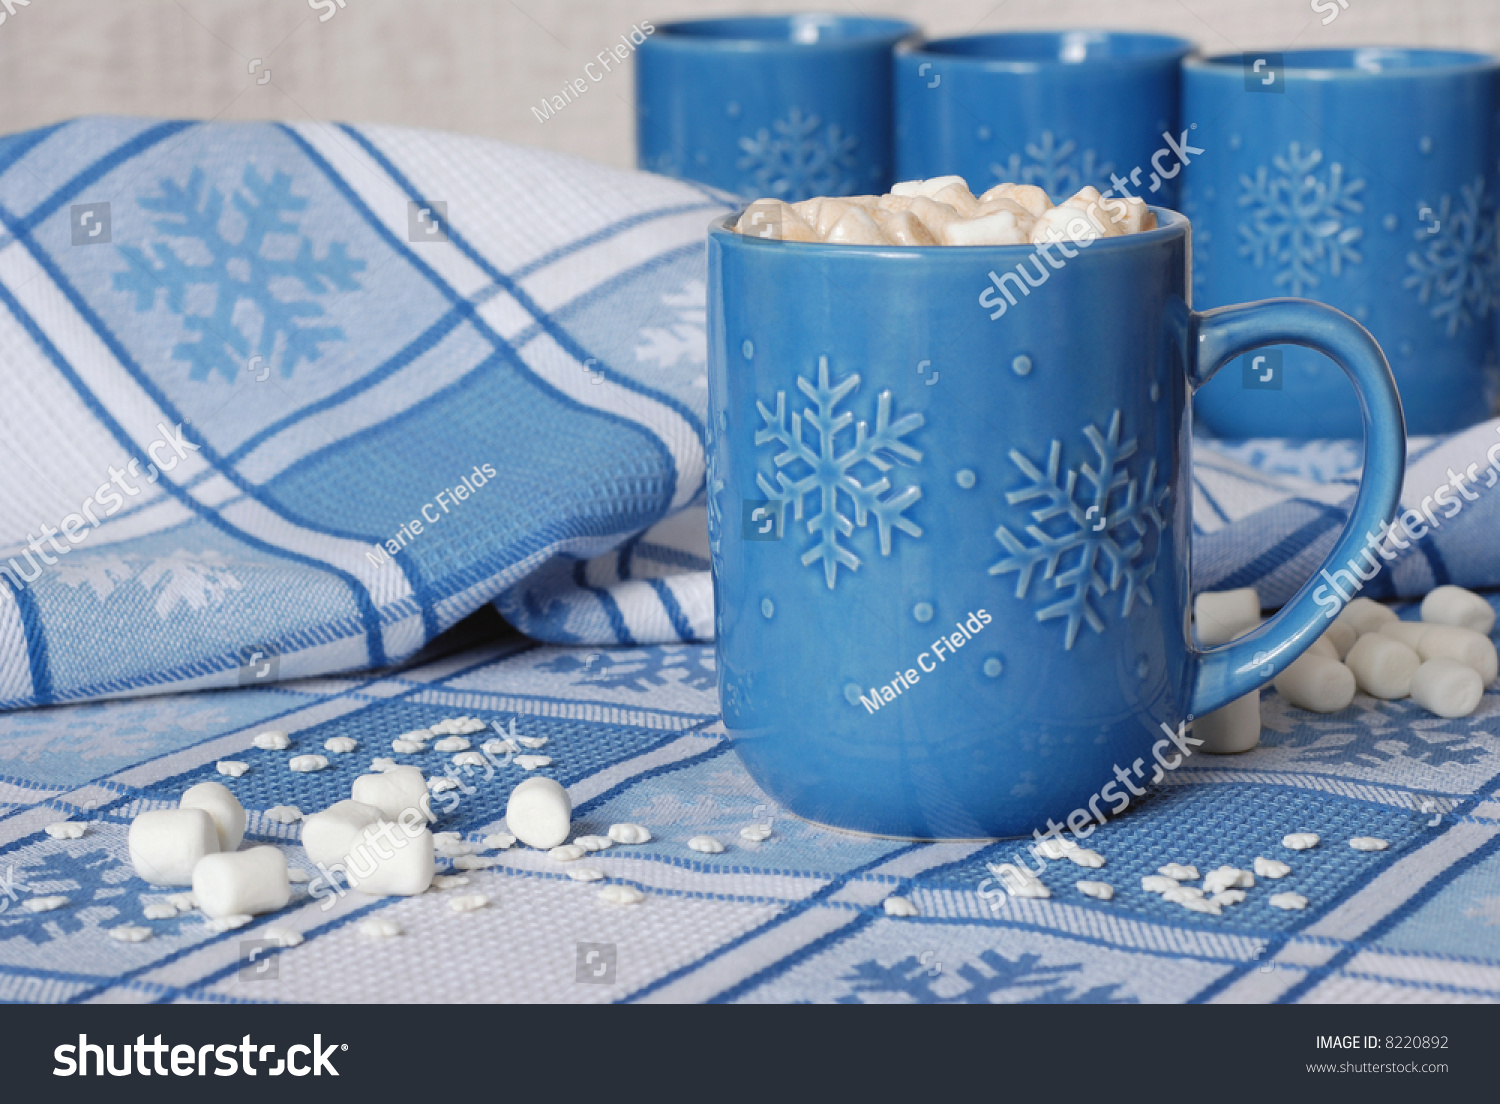 Good Blue Snowflake Mug Filled With Hot Chocolate And Marshmallows On Matching  Tablecloth. Miniature Marshmallows And